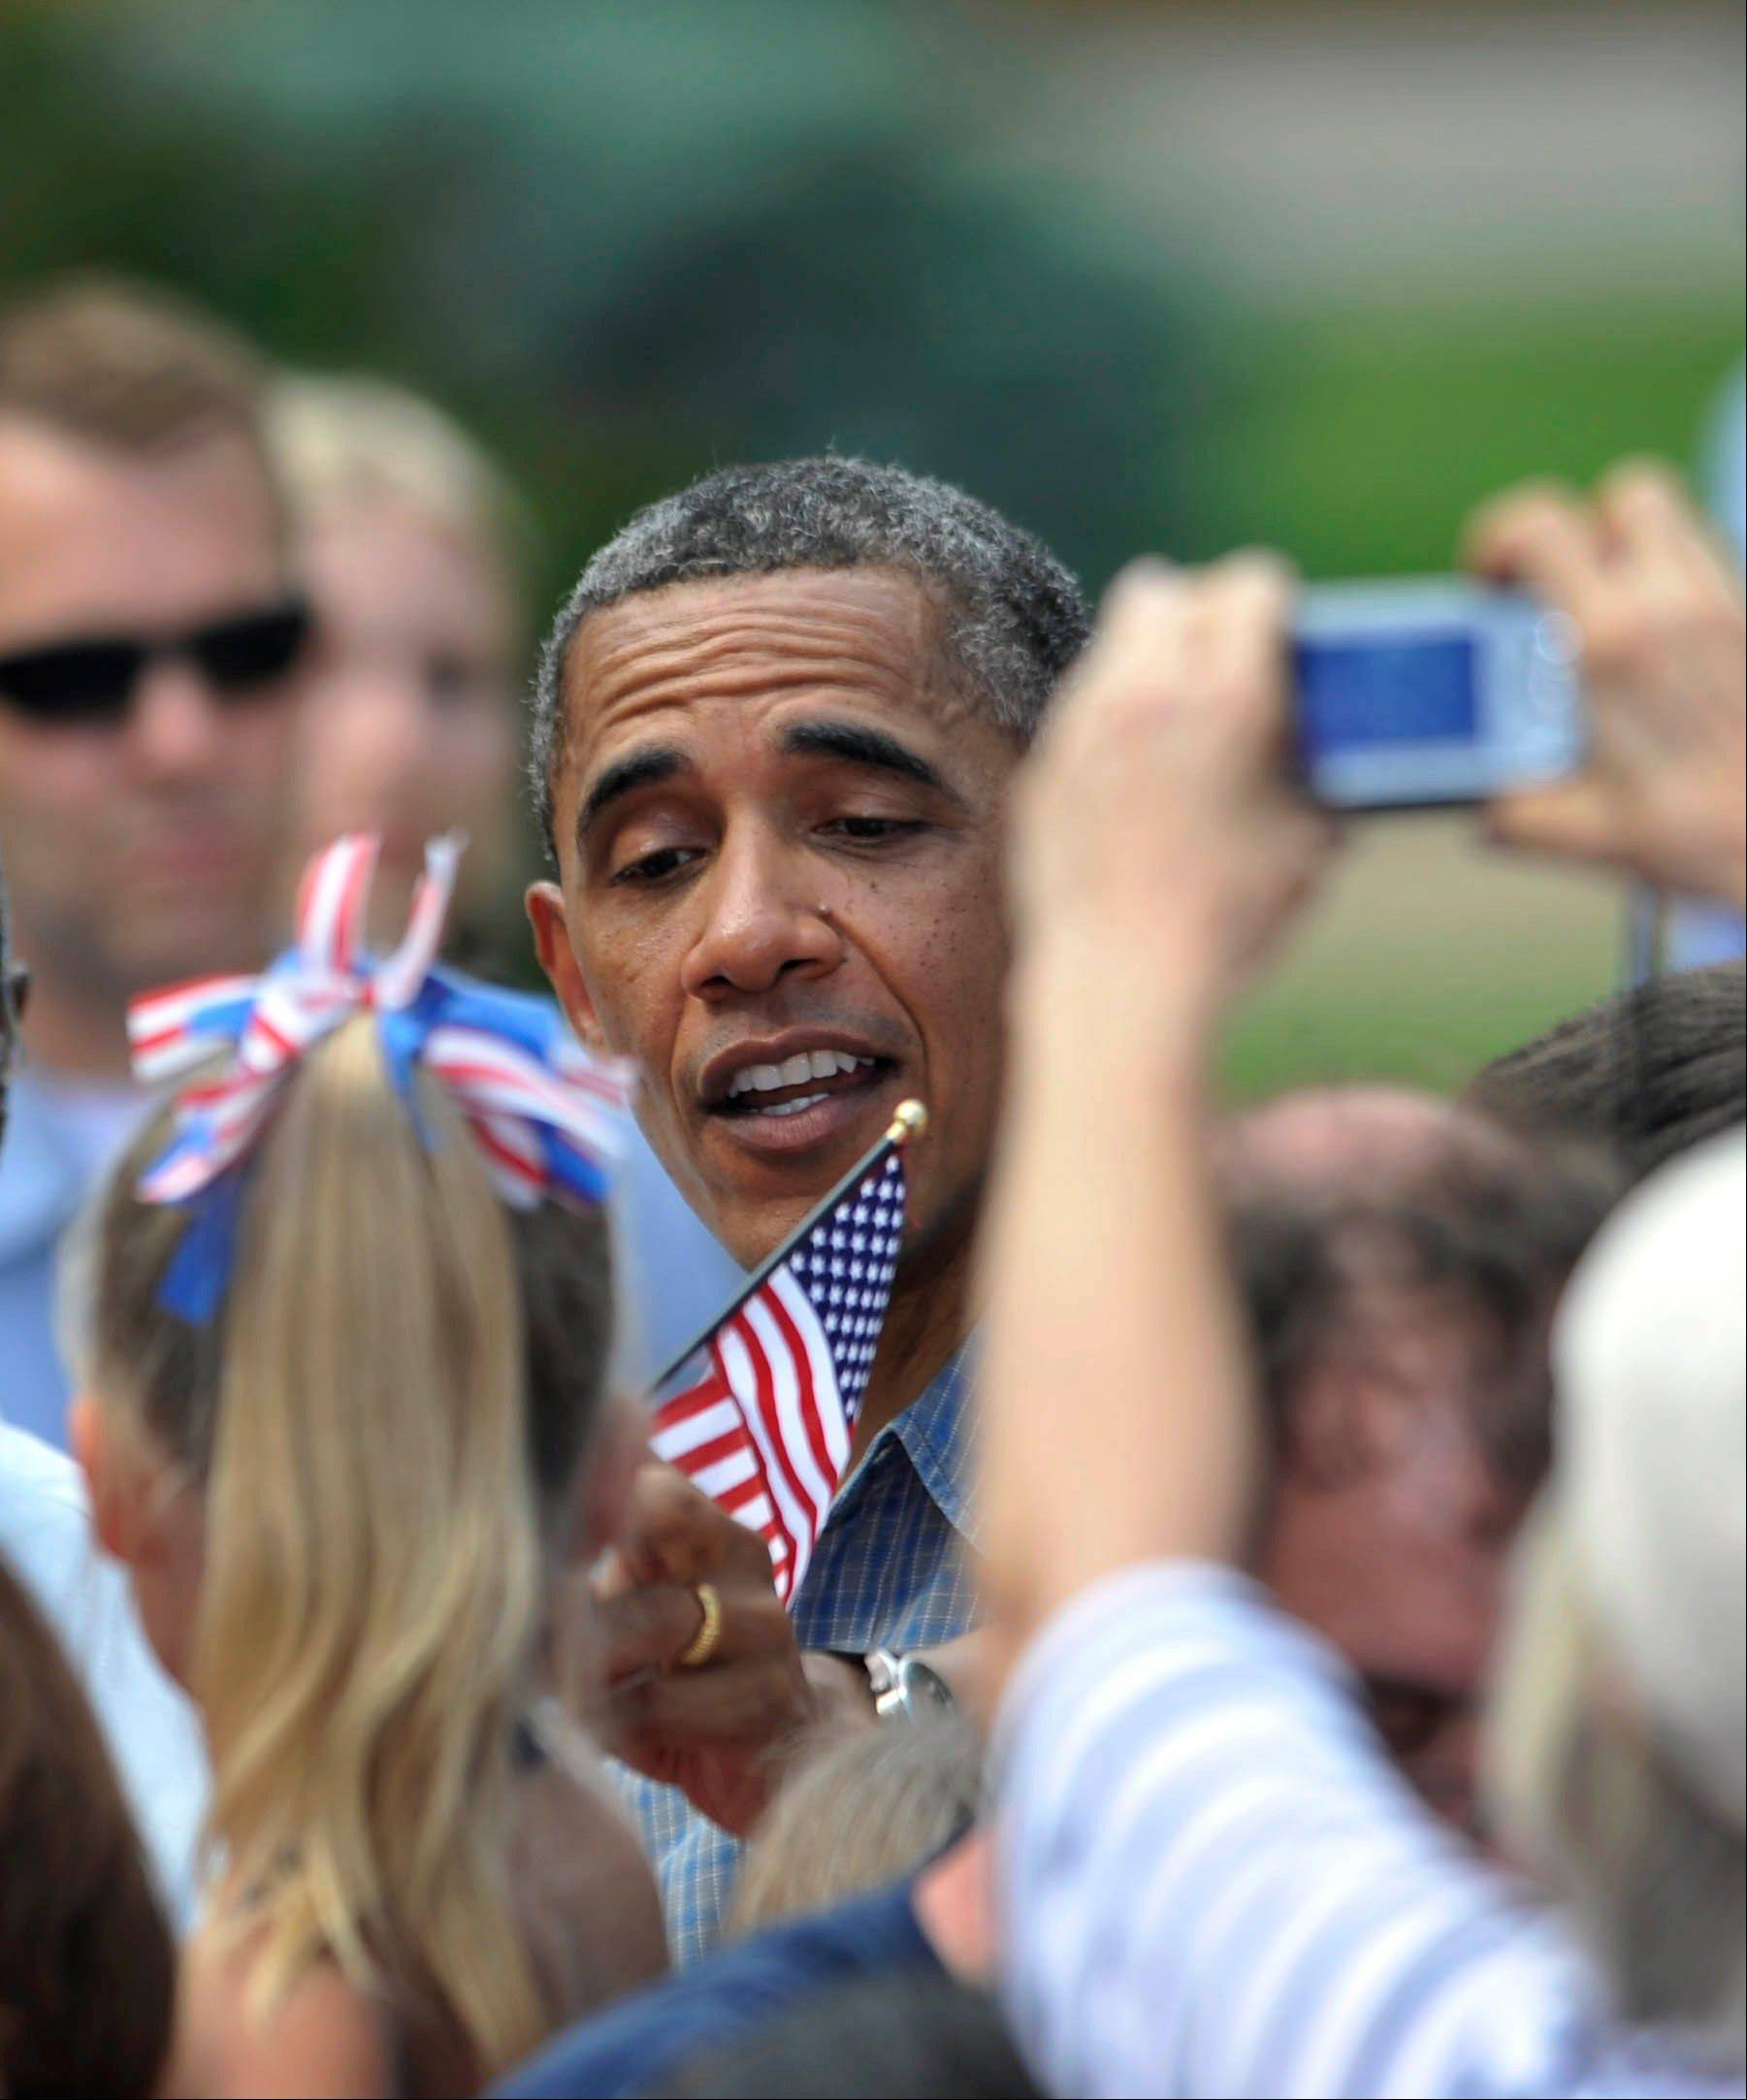 President Barack Obama takes a flag from Katelyn Maloy, 5, of Port Clinton, Ohio, after his speech at Washington Park in Sandusky, Ohio, Thursday. Obama is on a two-day bus trip through Ohio and Pennsylvania.